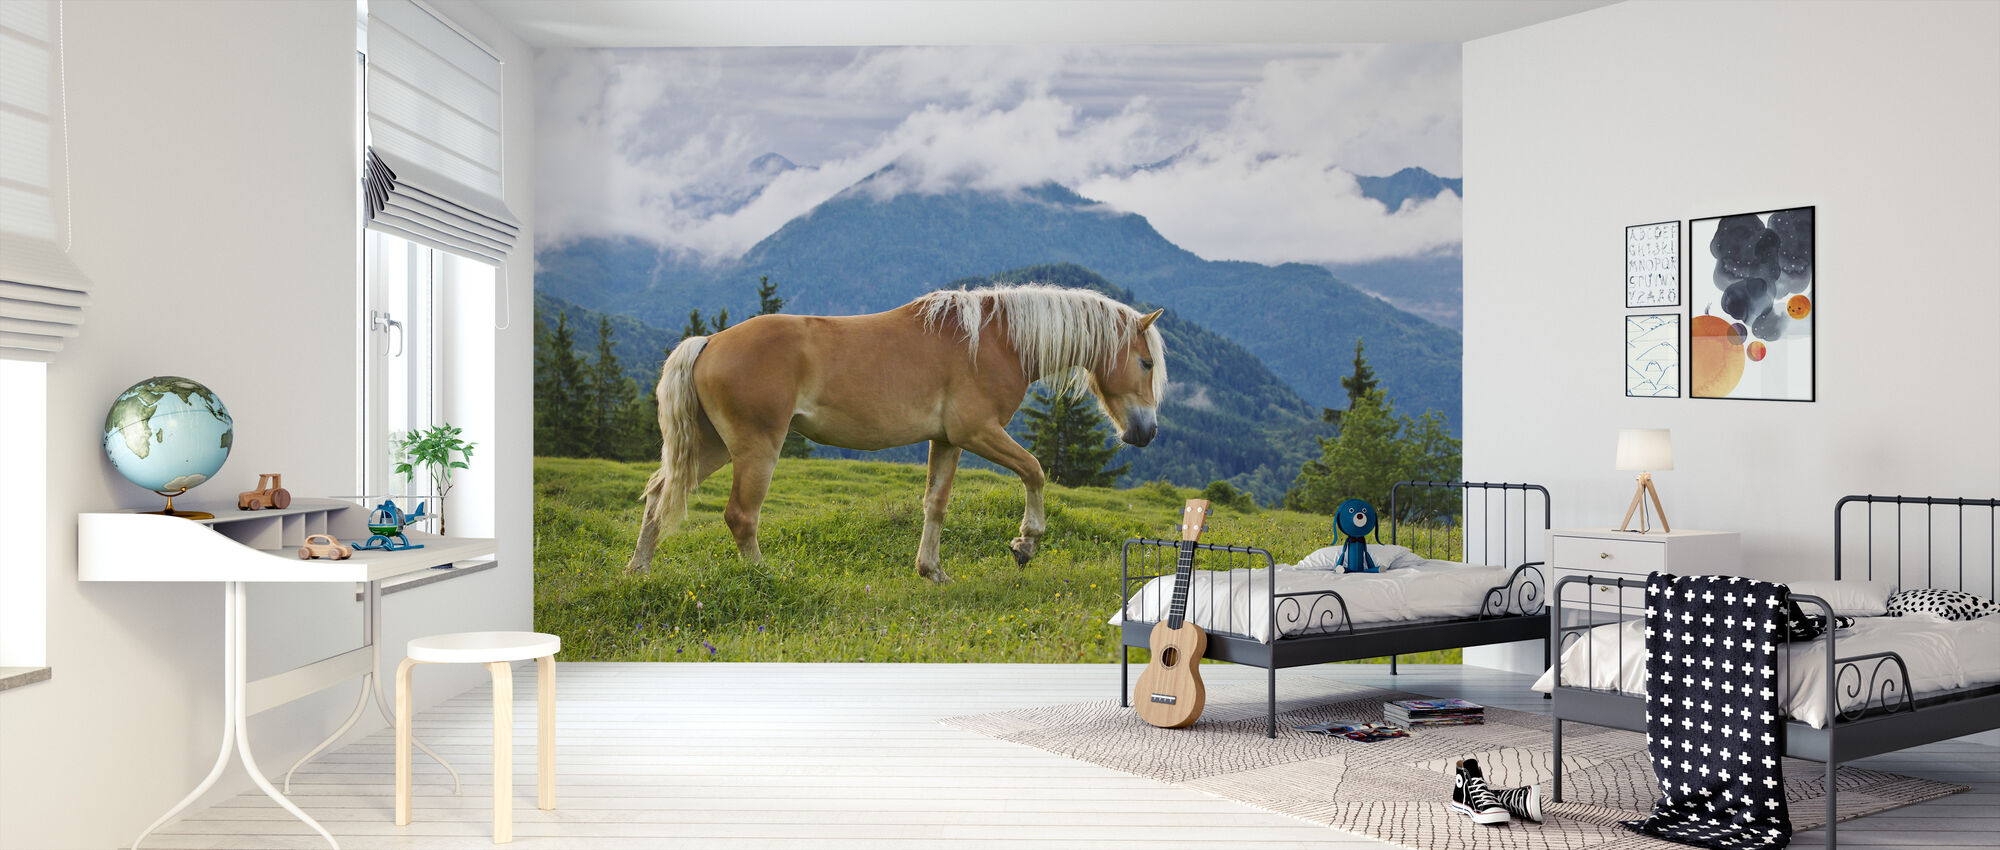 Young Haflinger Stallion in Alpine Meadow - Wallpaper - Kids Room